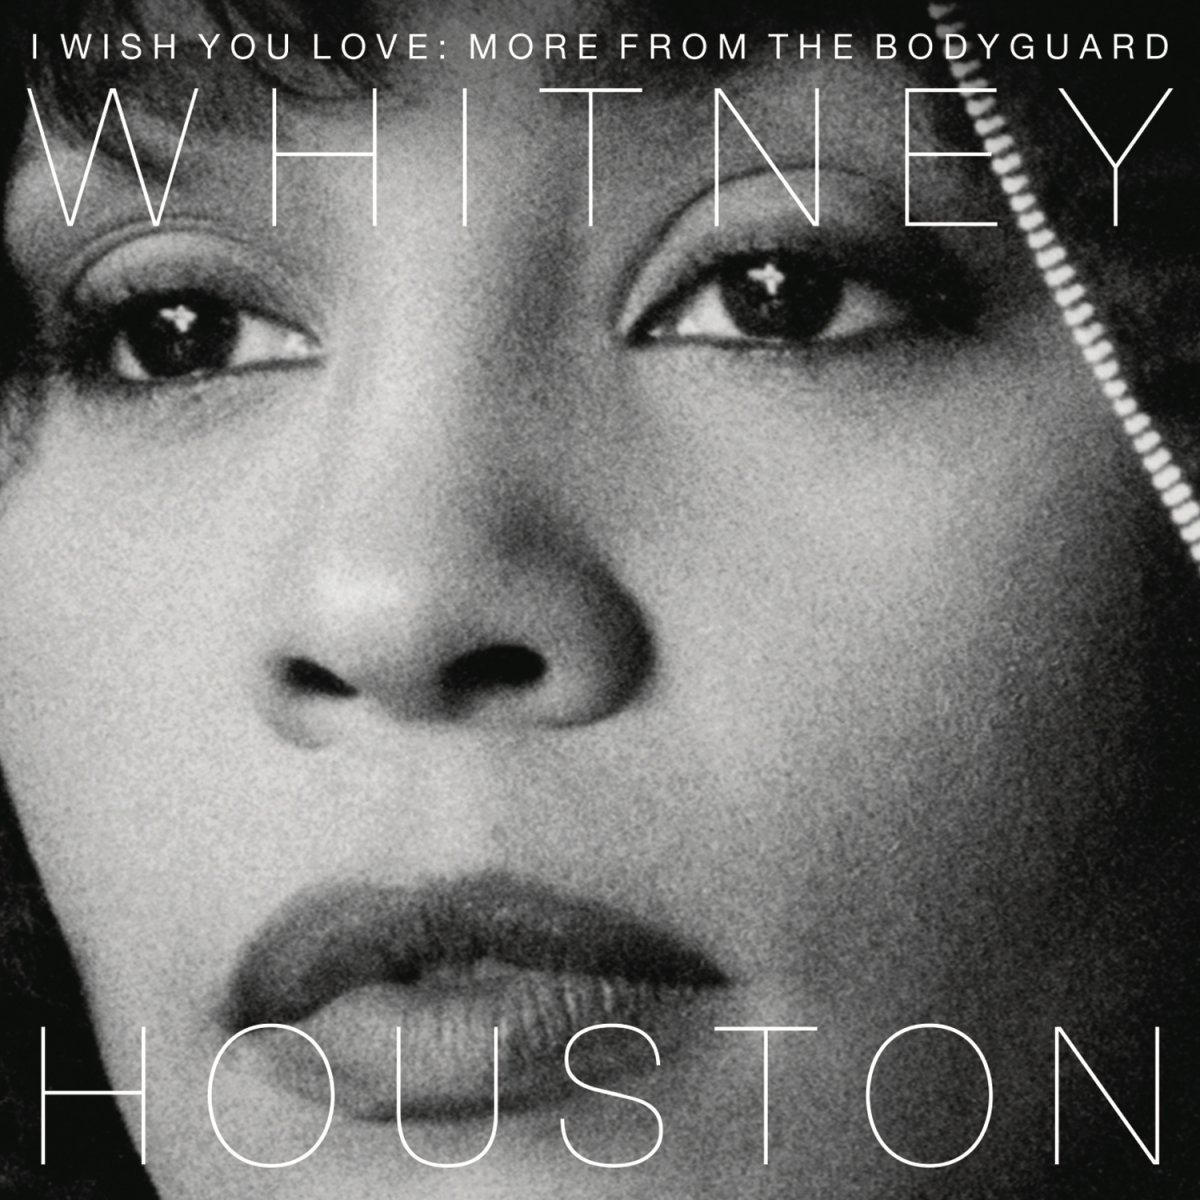 Whitney Houston - I Wish You Love: More From The Bodyguard Www